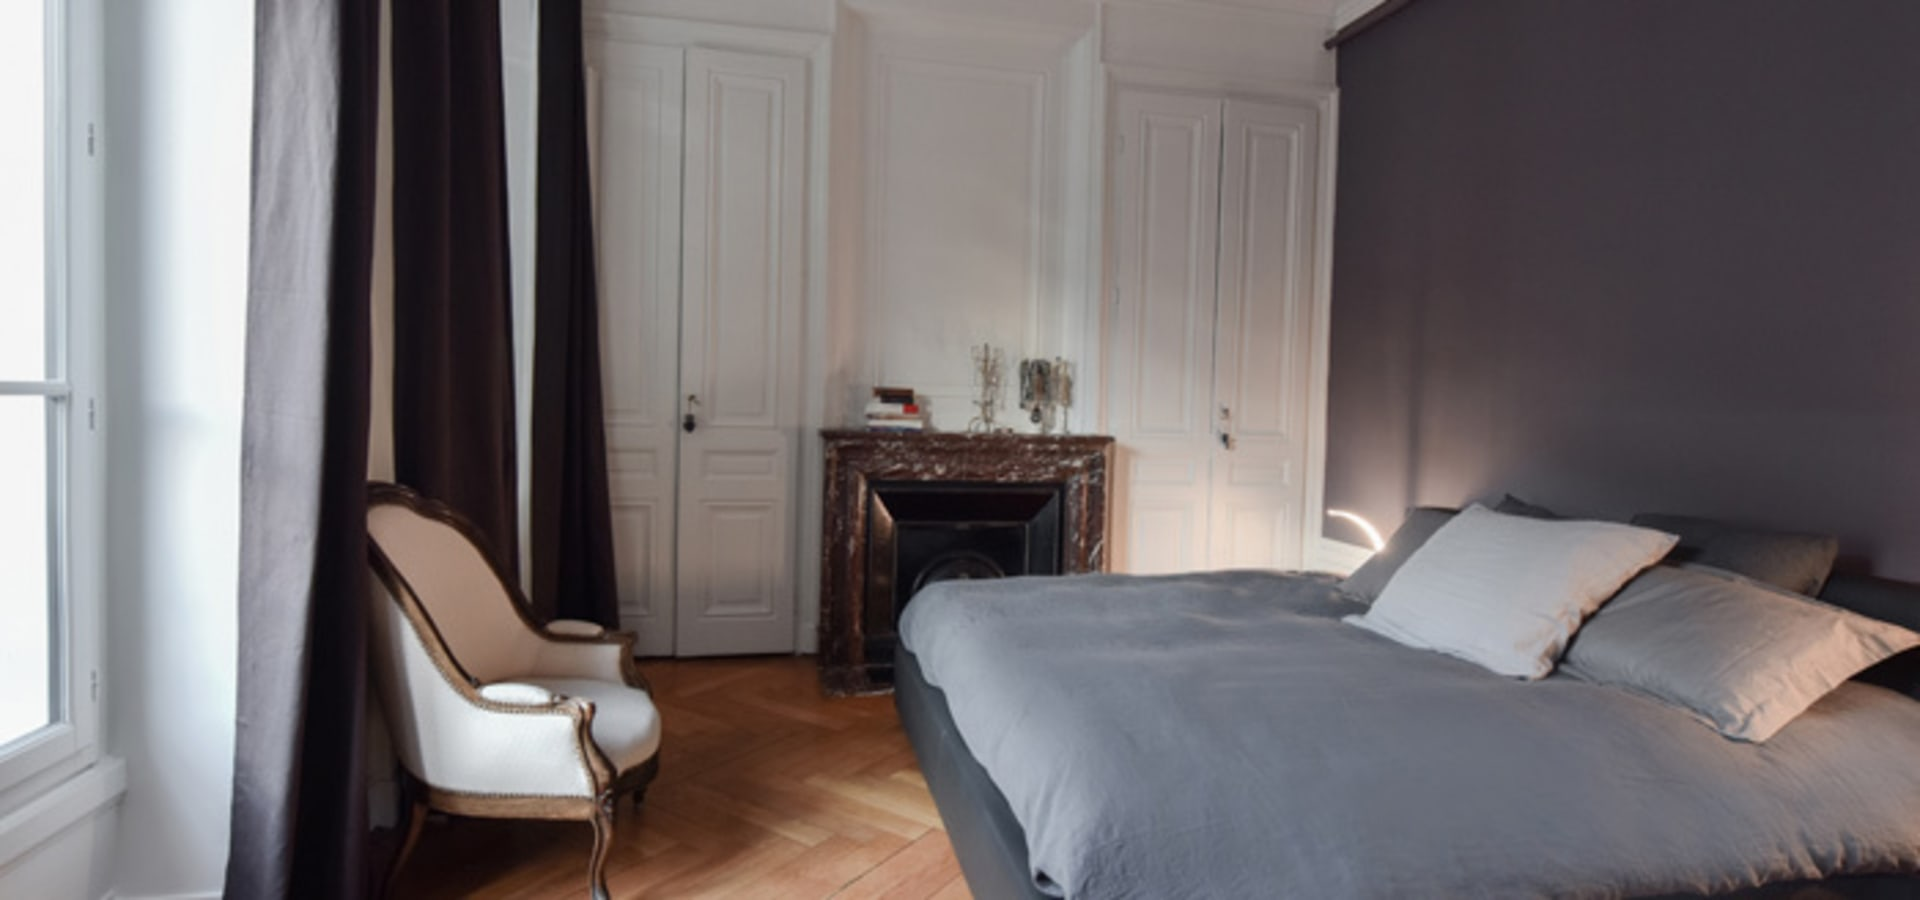 marion lano architecte d 39 int rieur r novation d 39 un appartement haussmannien lyon 06 homify. Black Bedroom Furniture Sets. Home Design Ideas